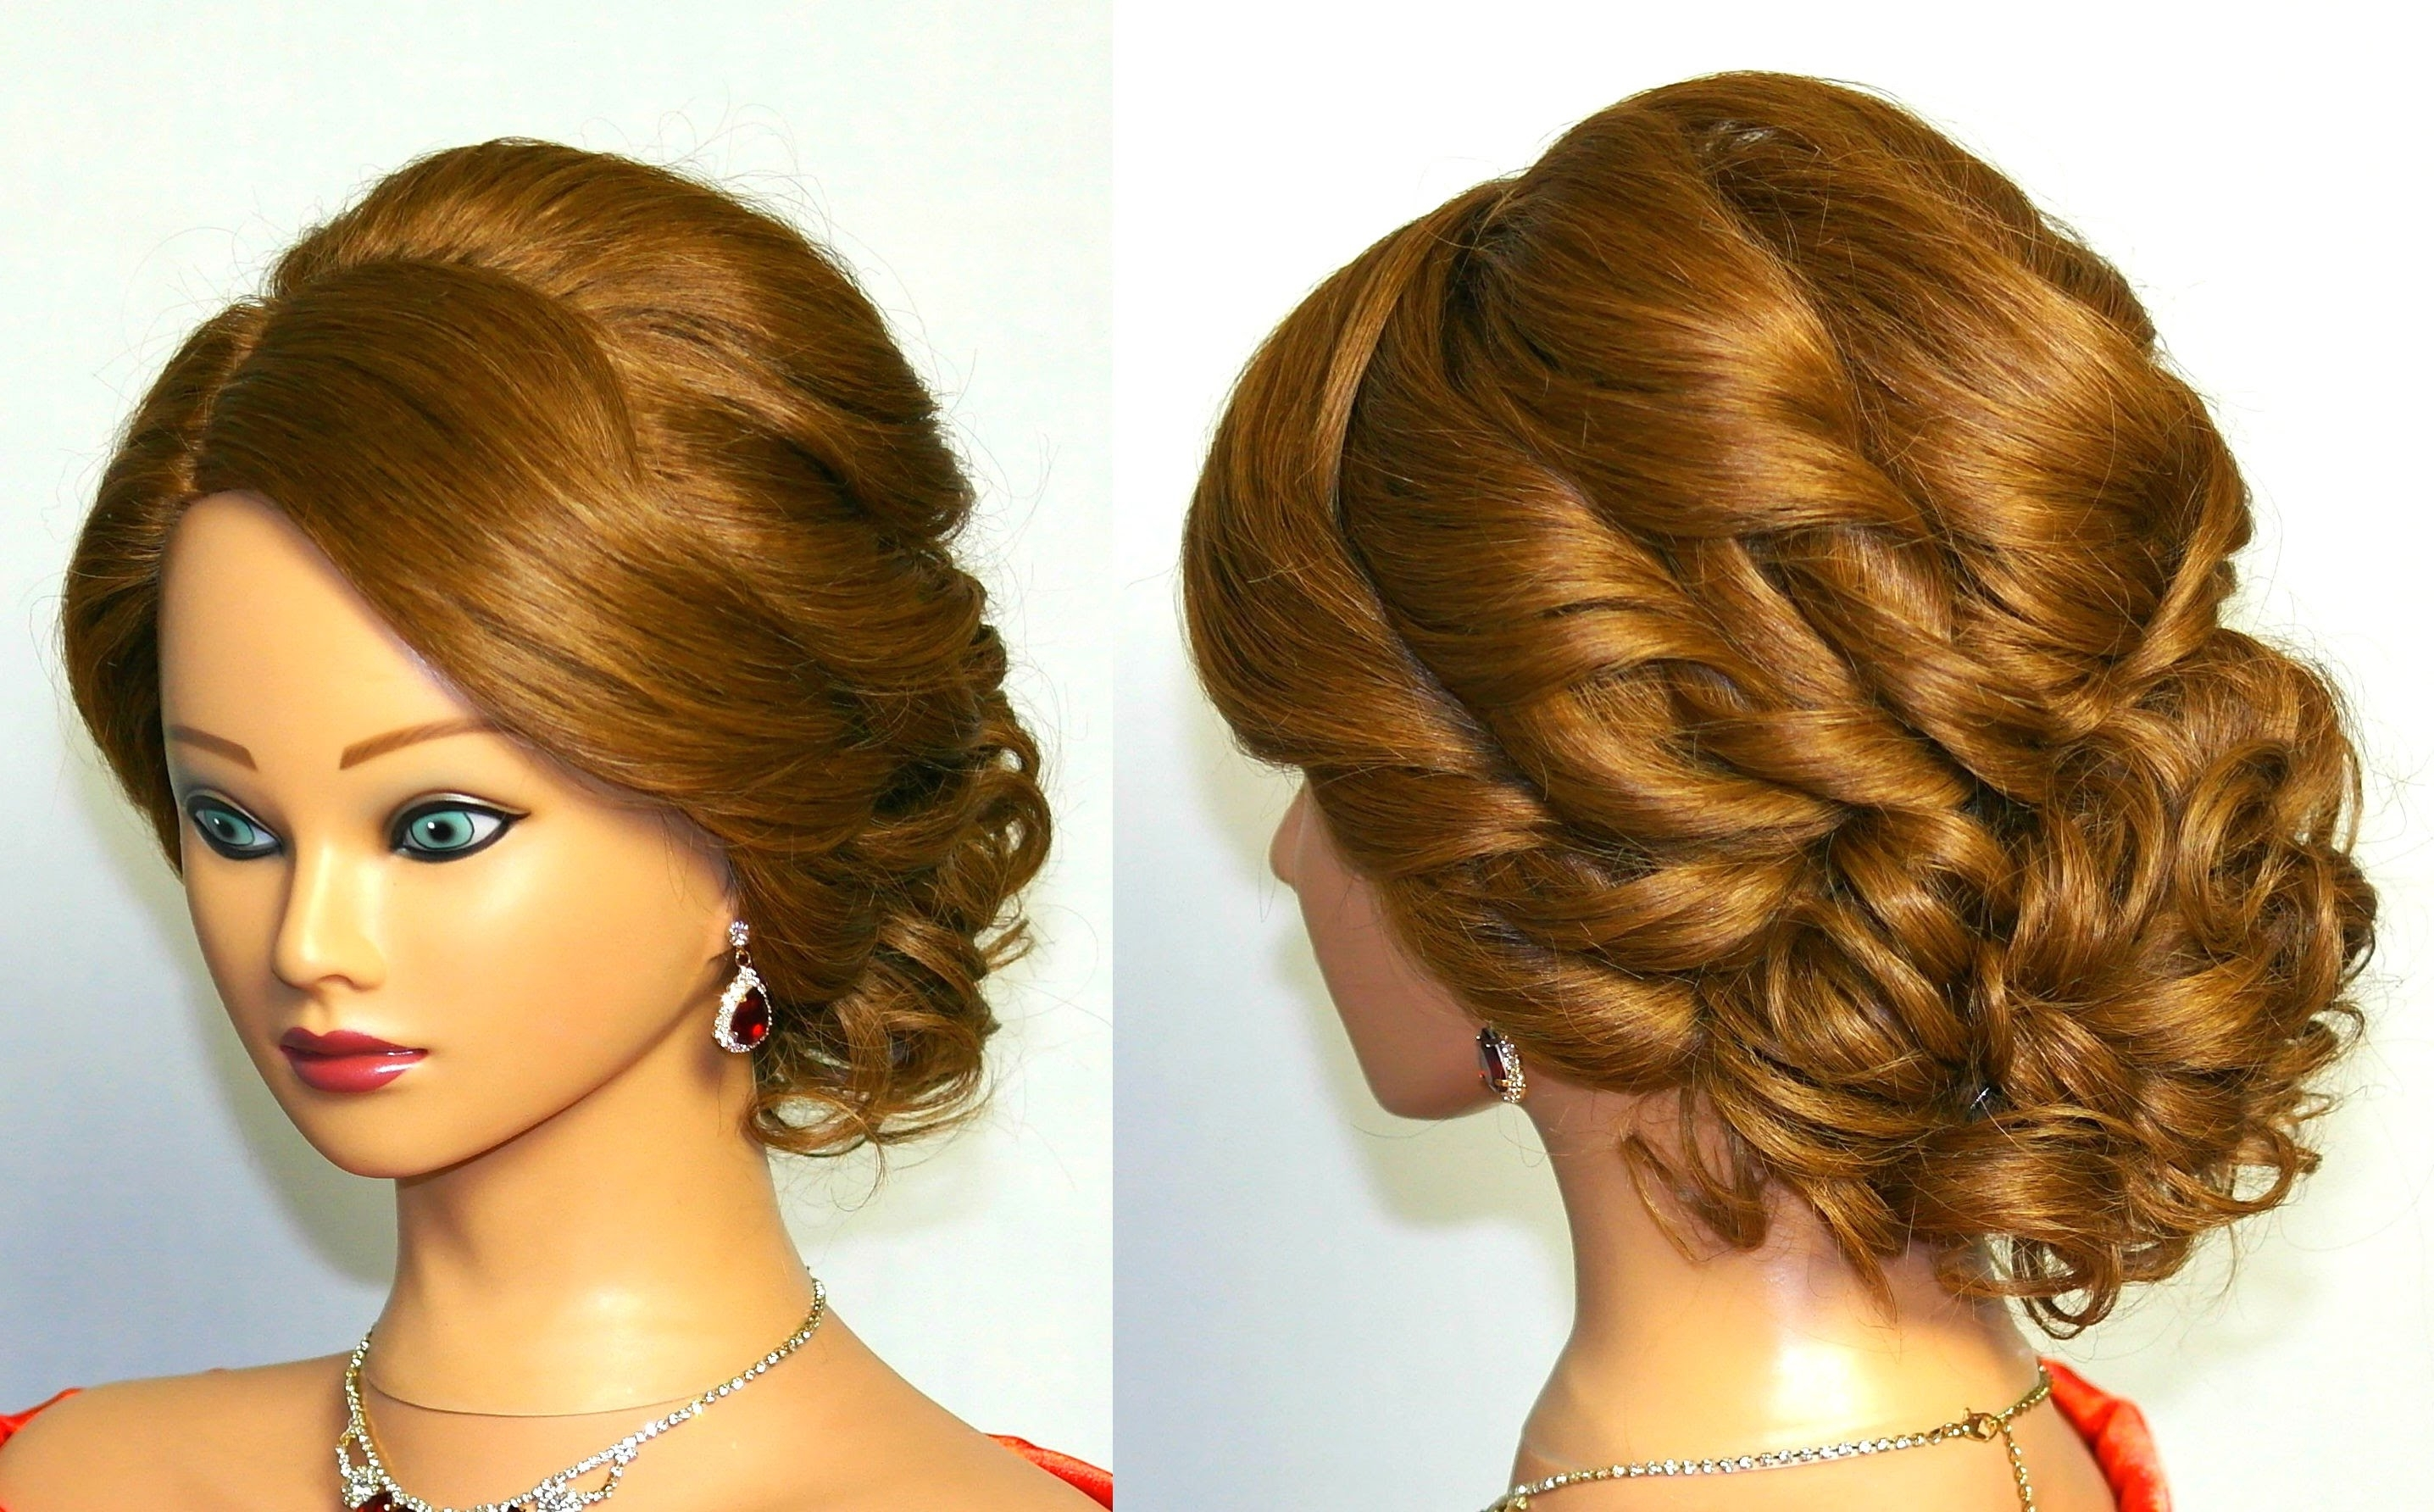 Captivating Curly Bun Hairstyles Wedding For Bridal Curly Updo In Curly Bun Updo Hairstyles (View 4 of 15)